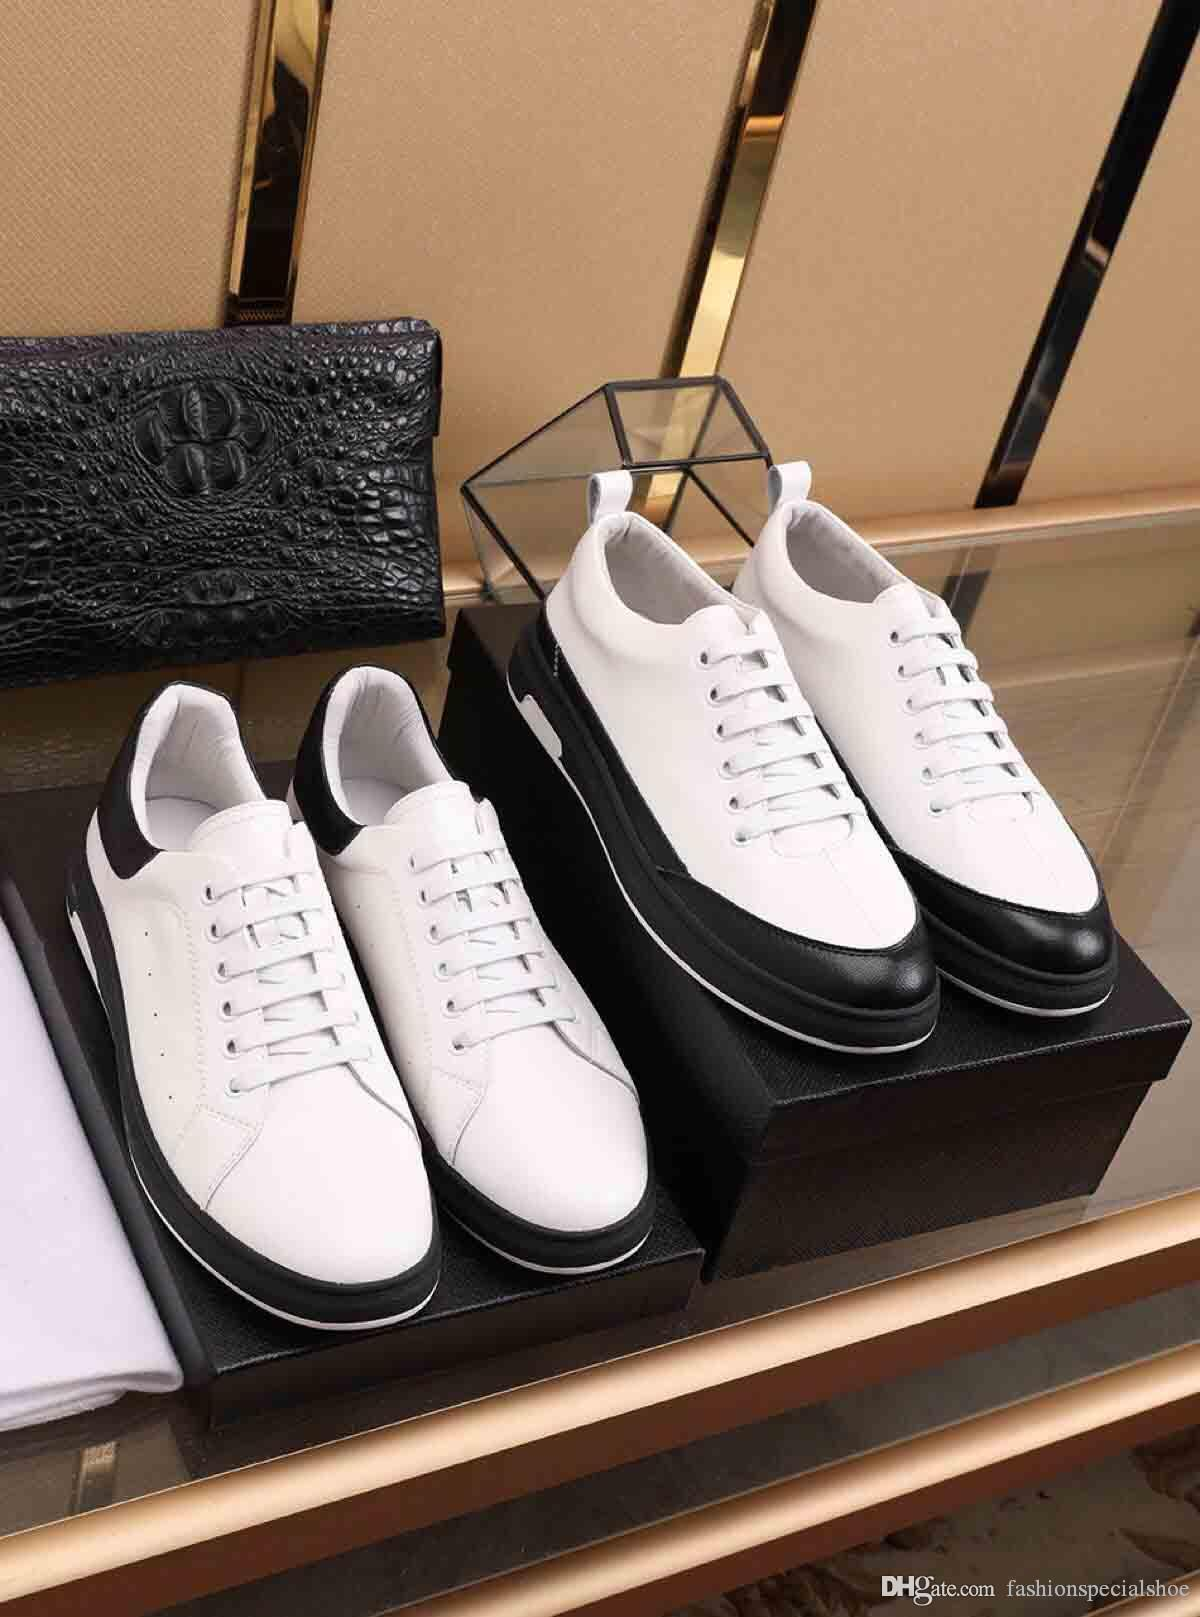 2020 designer new superstar running casual shoes men's white leather flat bottom anti-fashion trend solid color sneakers